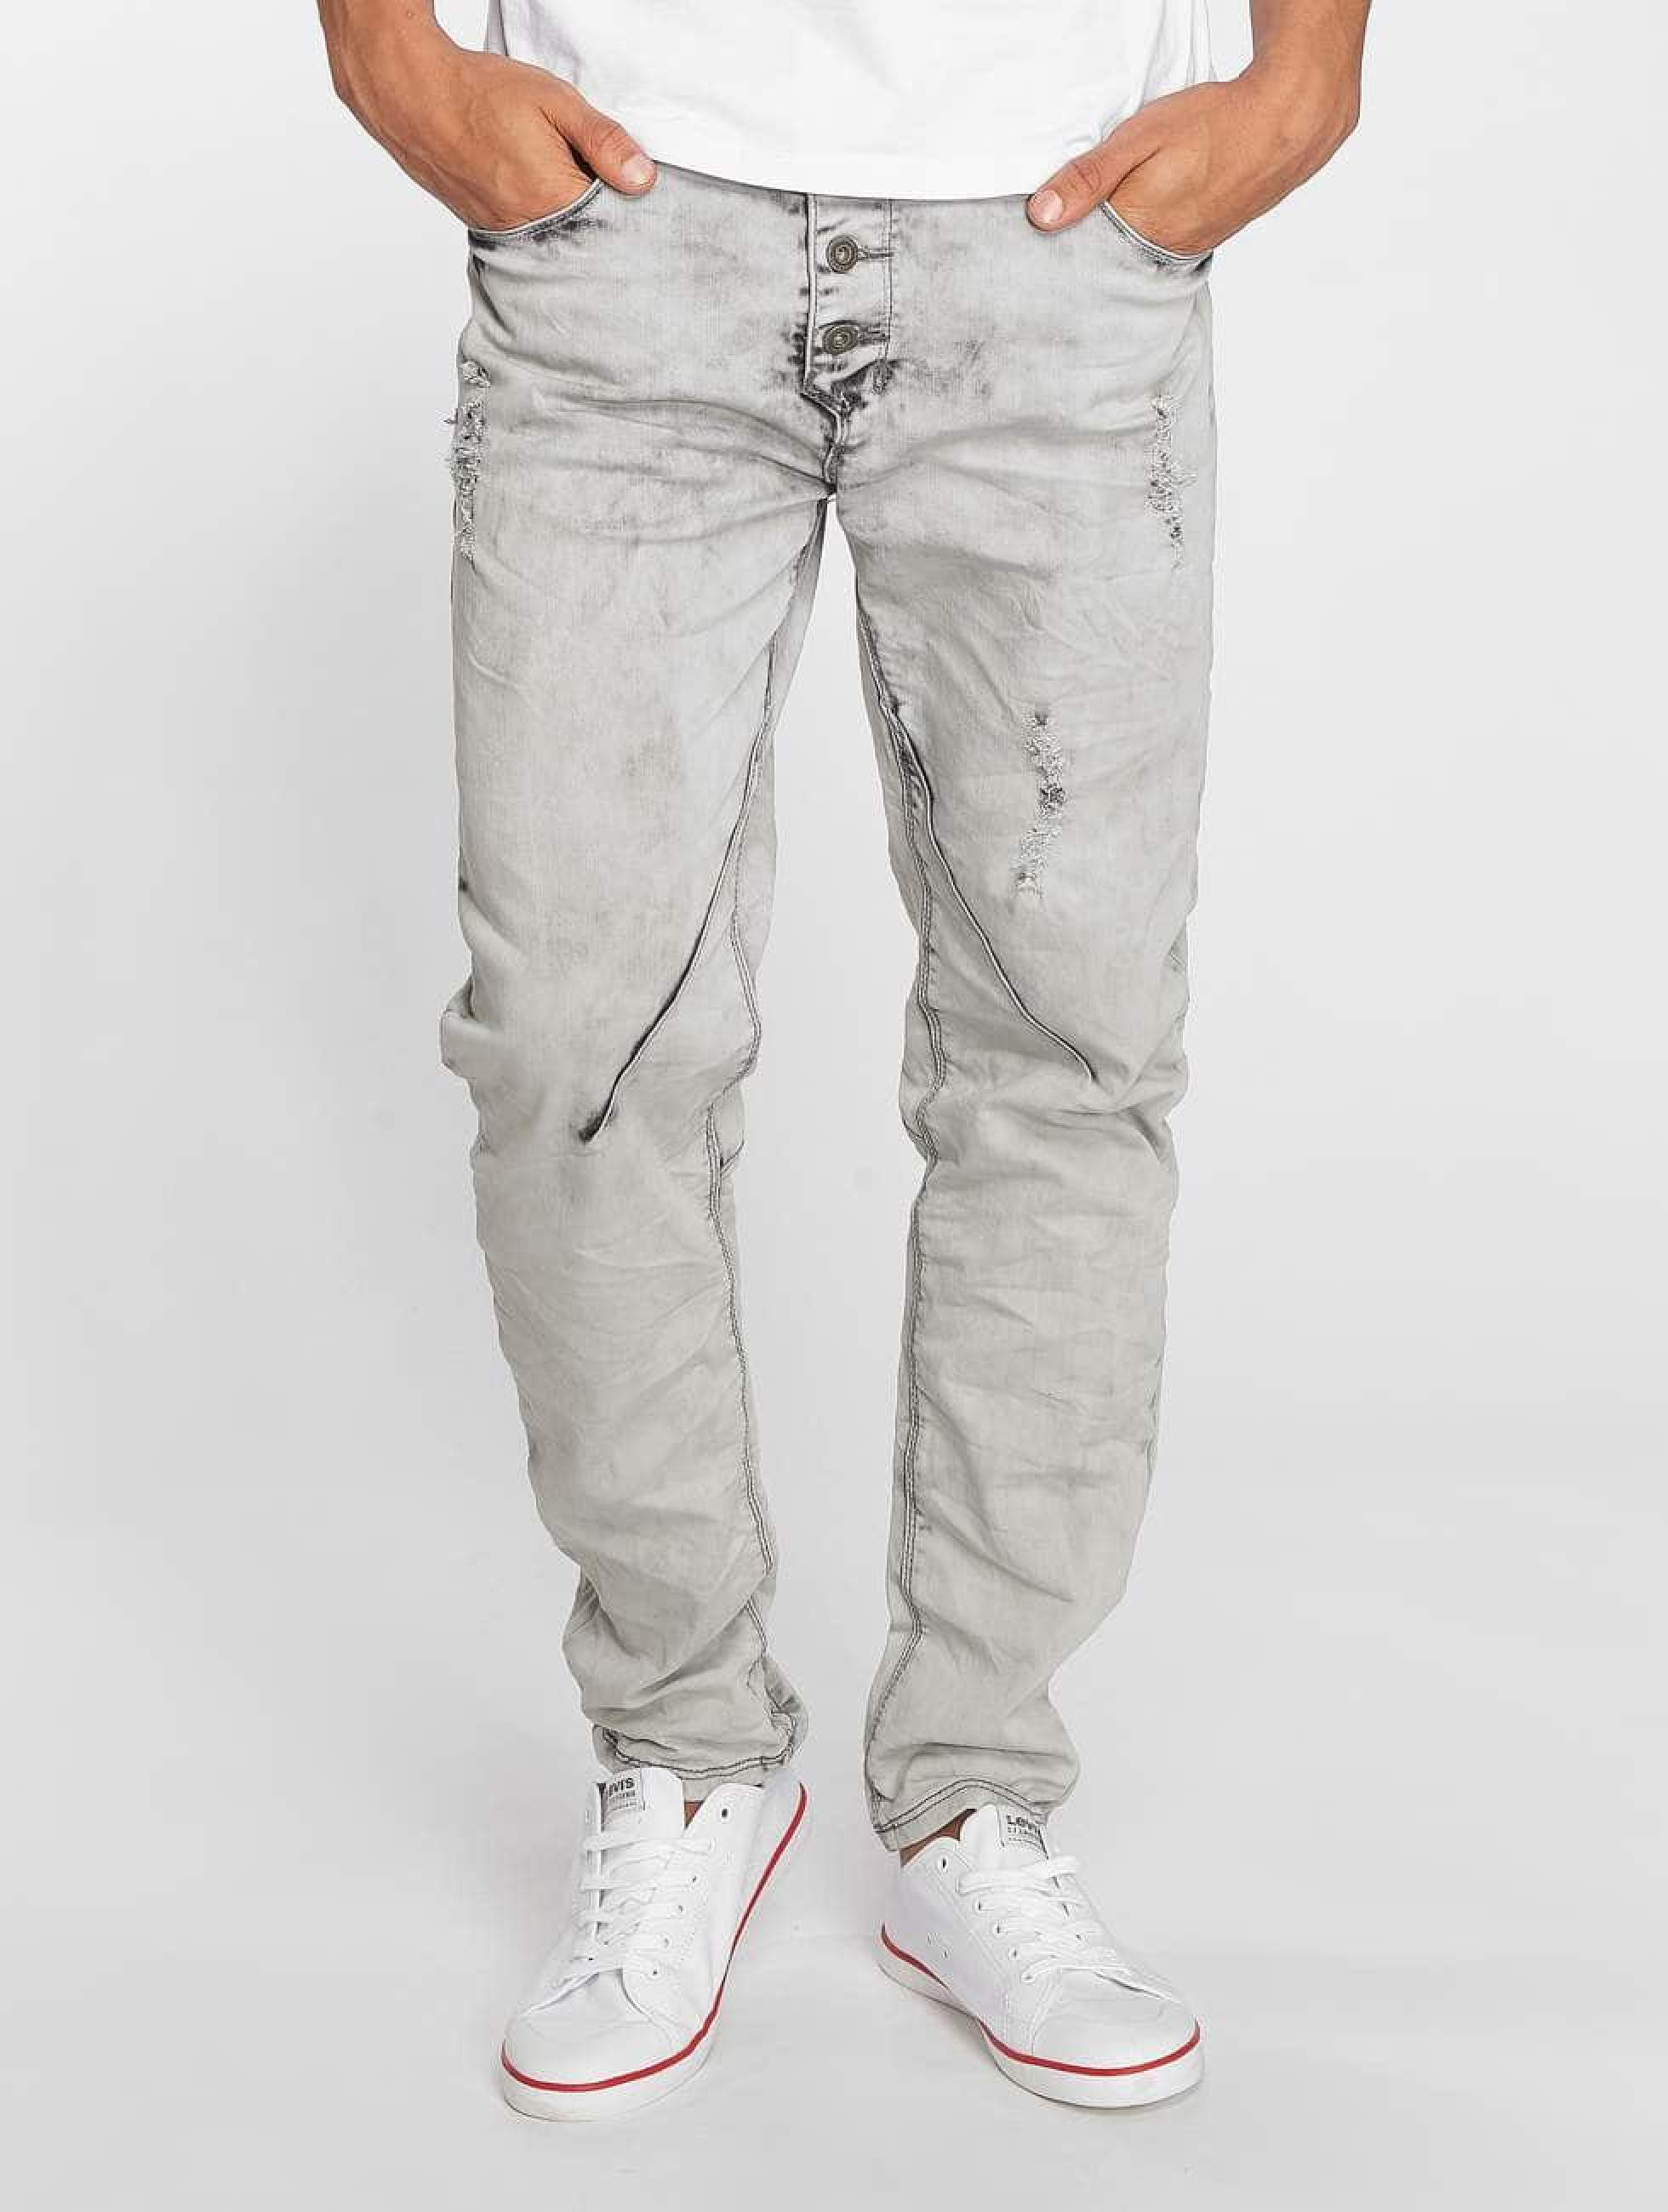 Sky Rebel | Elay  gris Homme Jean coupe droite